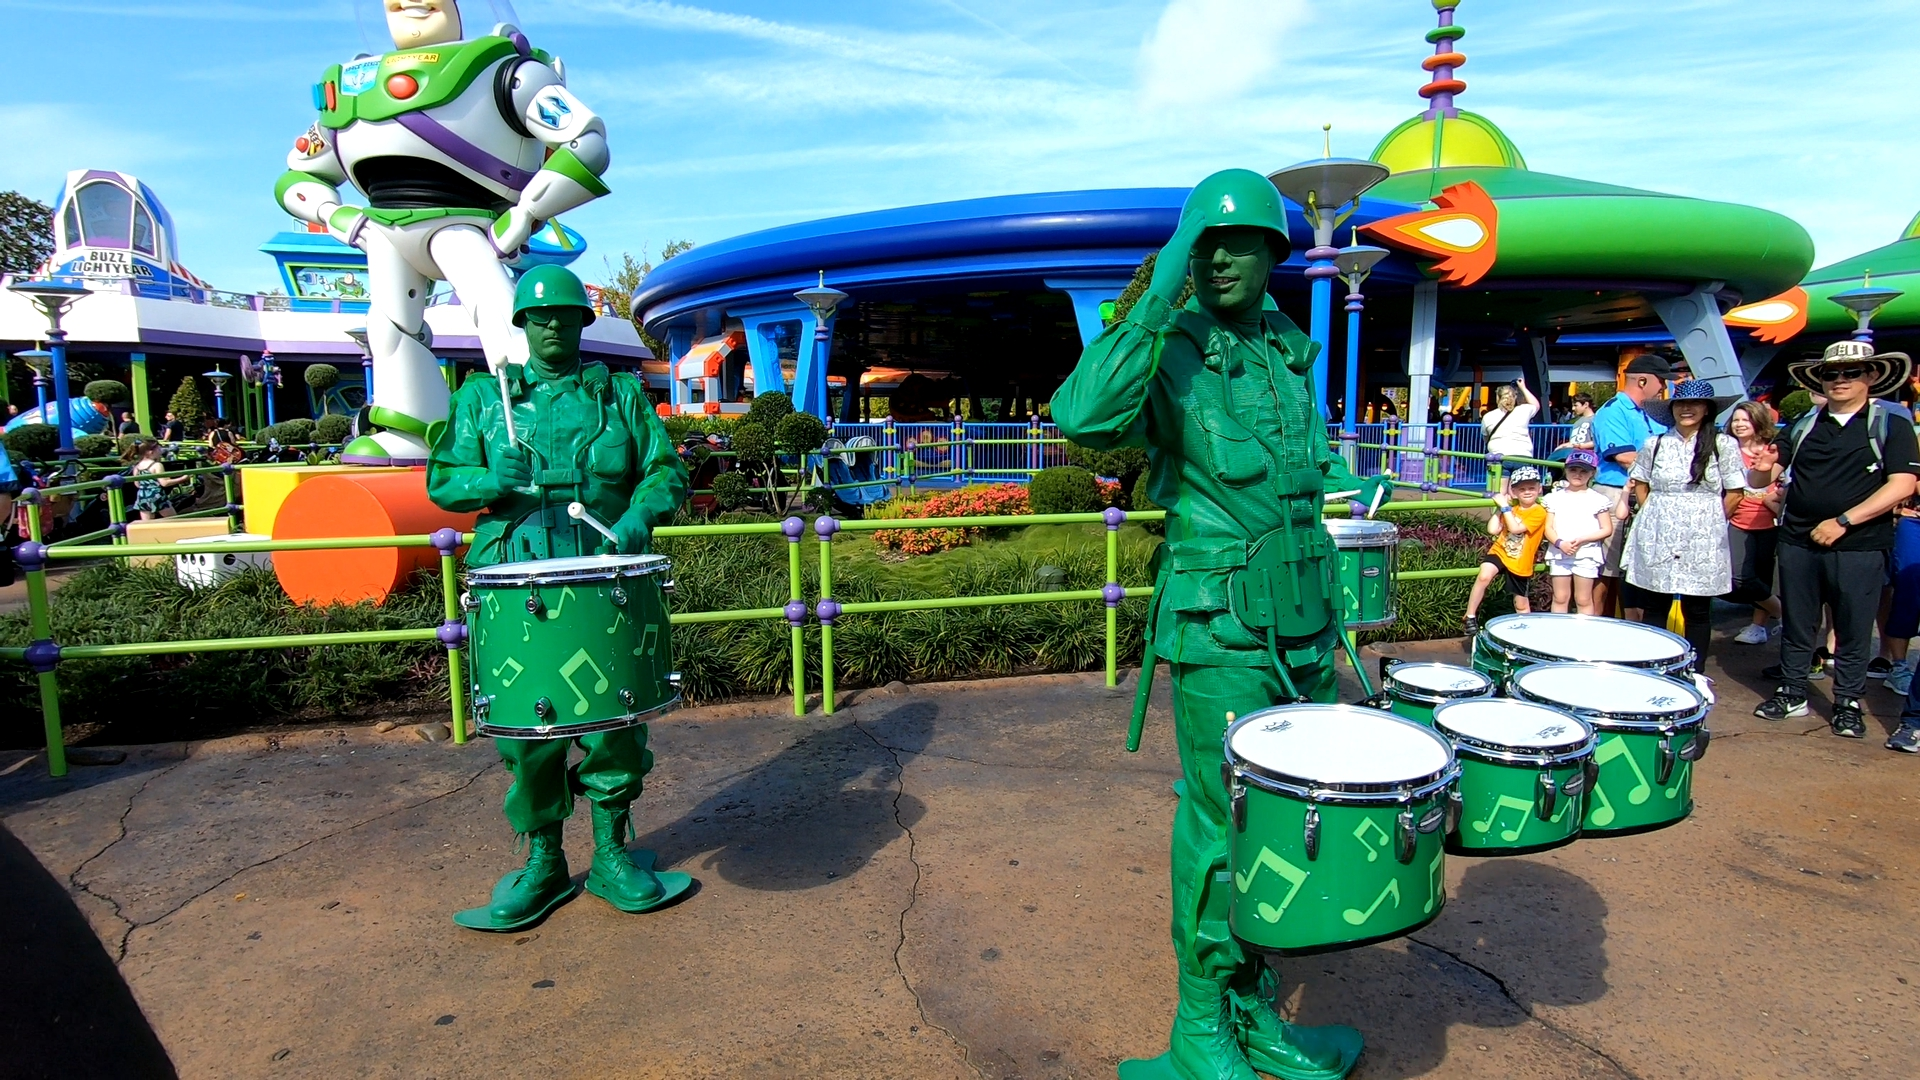 The Green Army Drum Corps